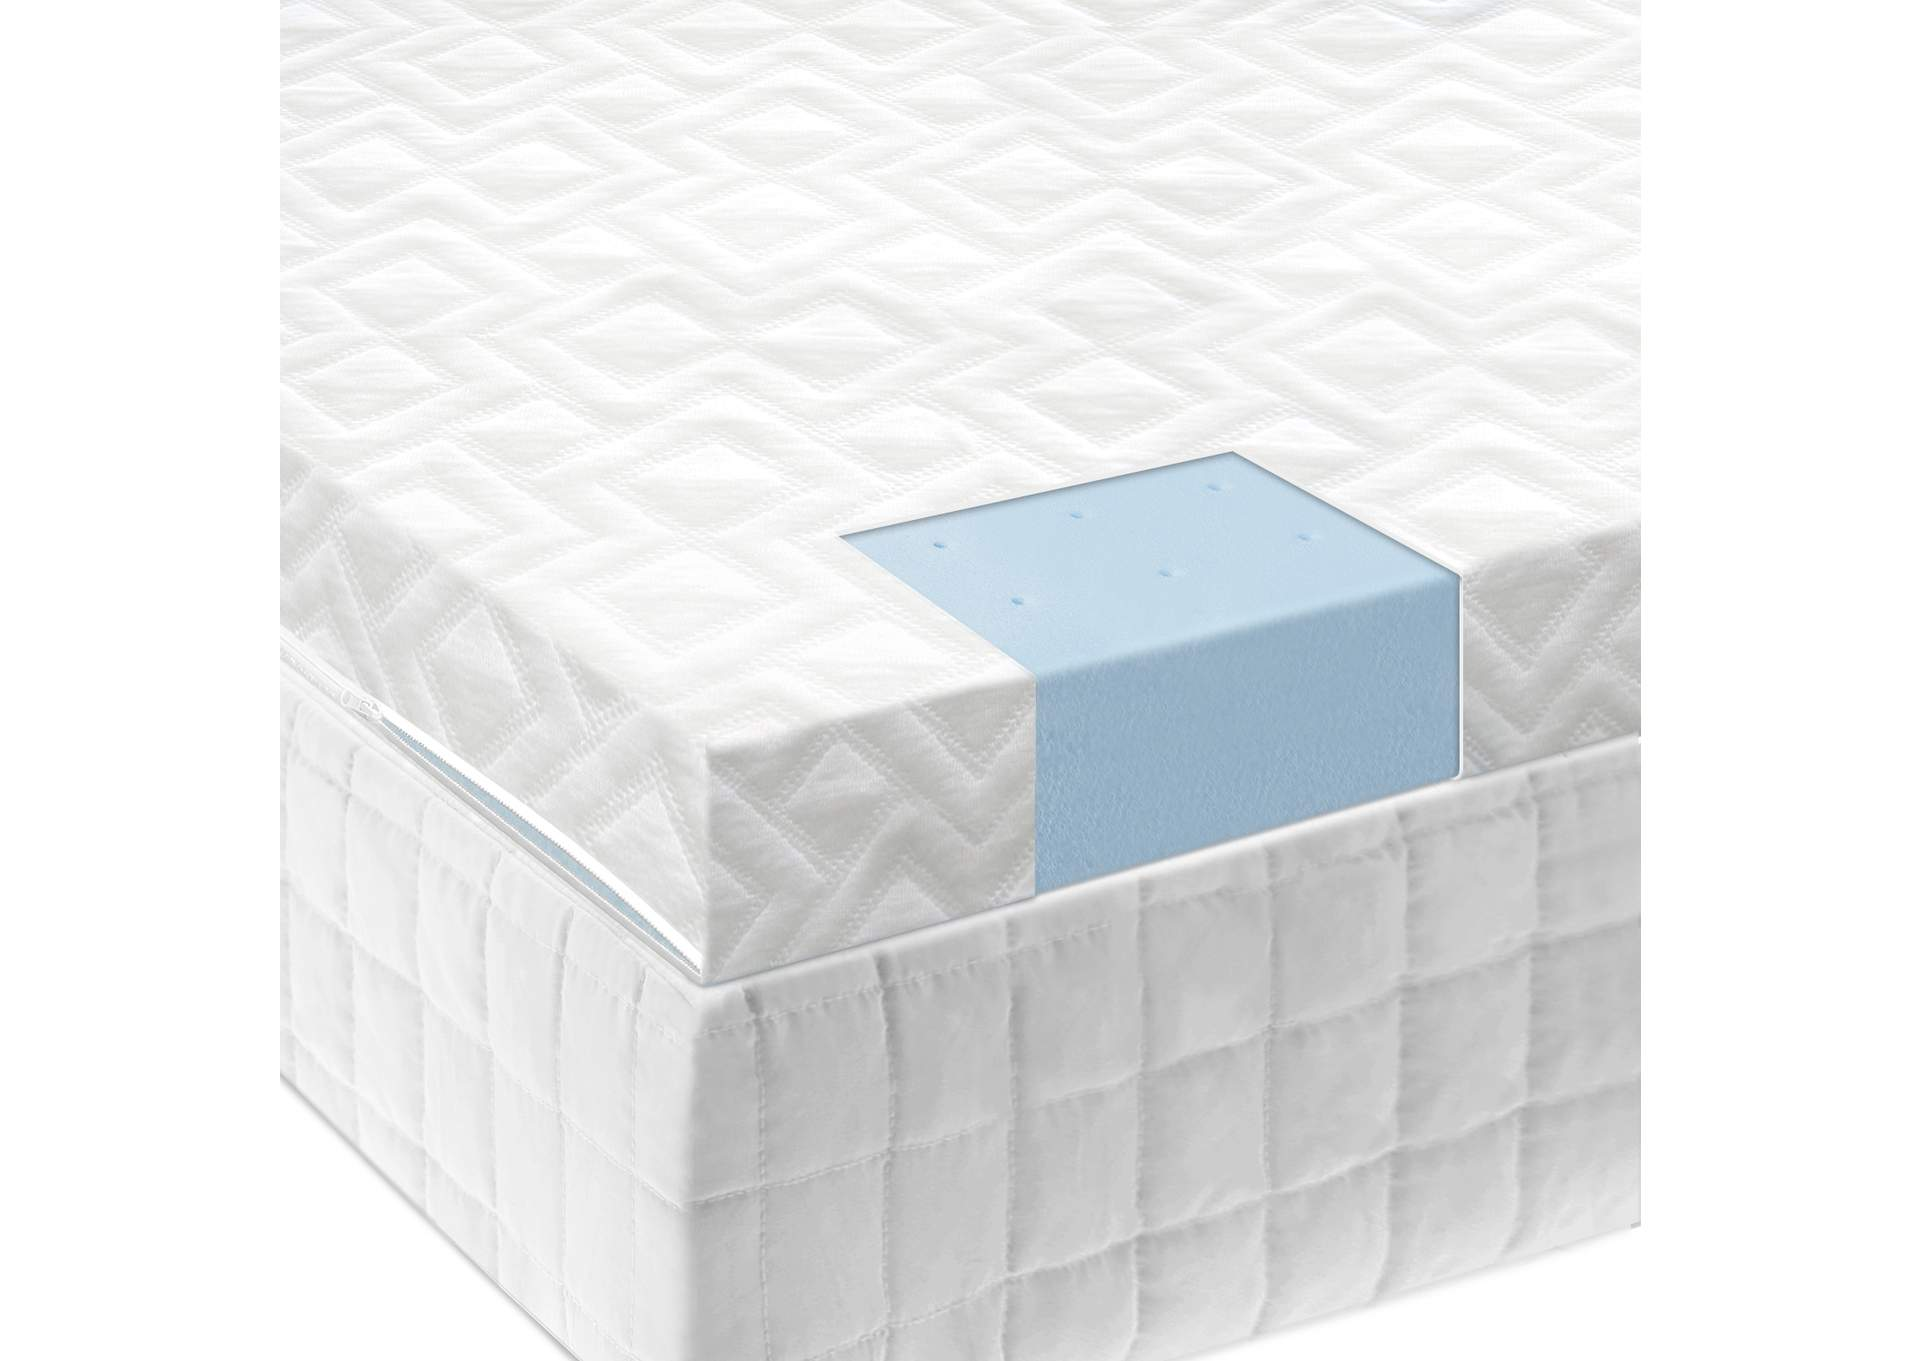 2.5 Inch Gel Memory Foam Mattress Topper Twin,Malouf